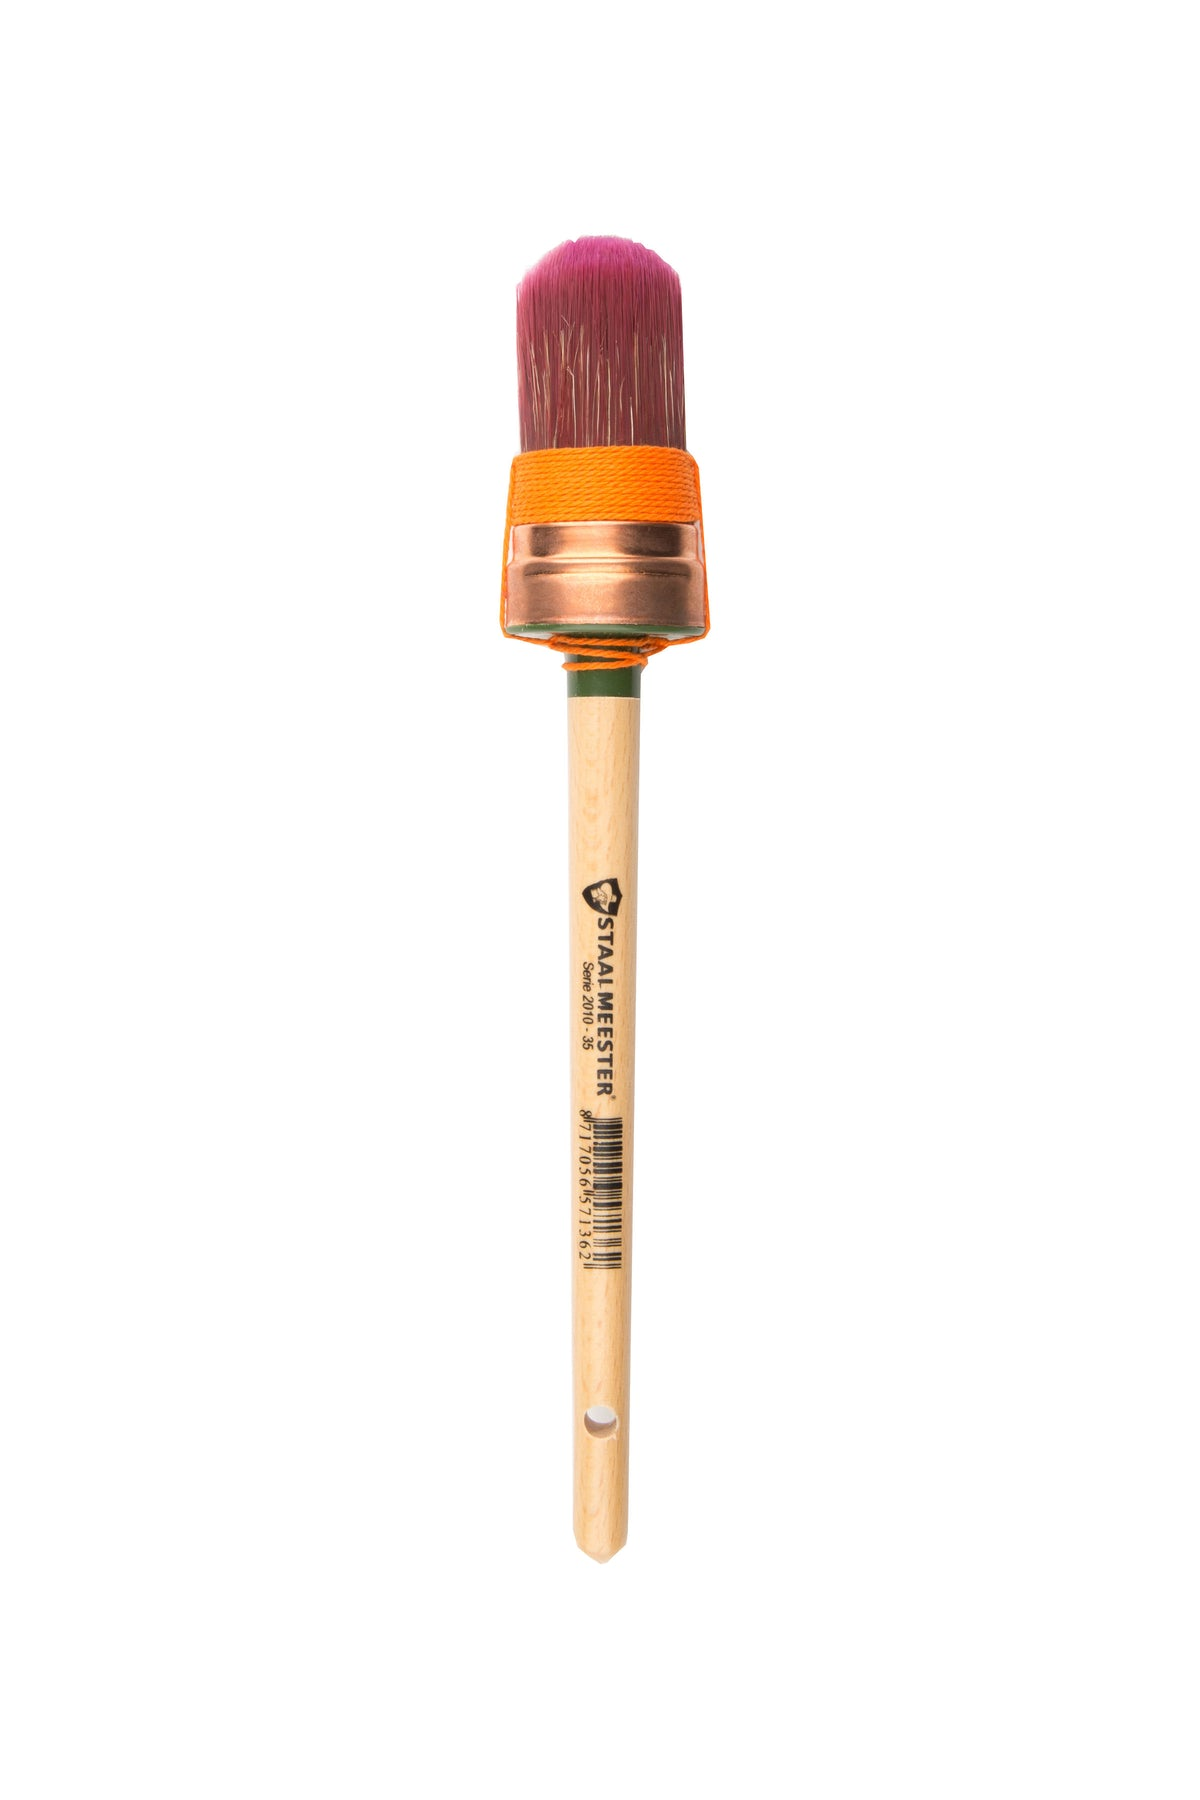 Staalmeester Oval Brushes